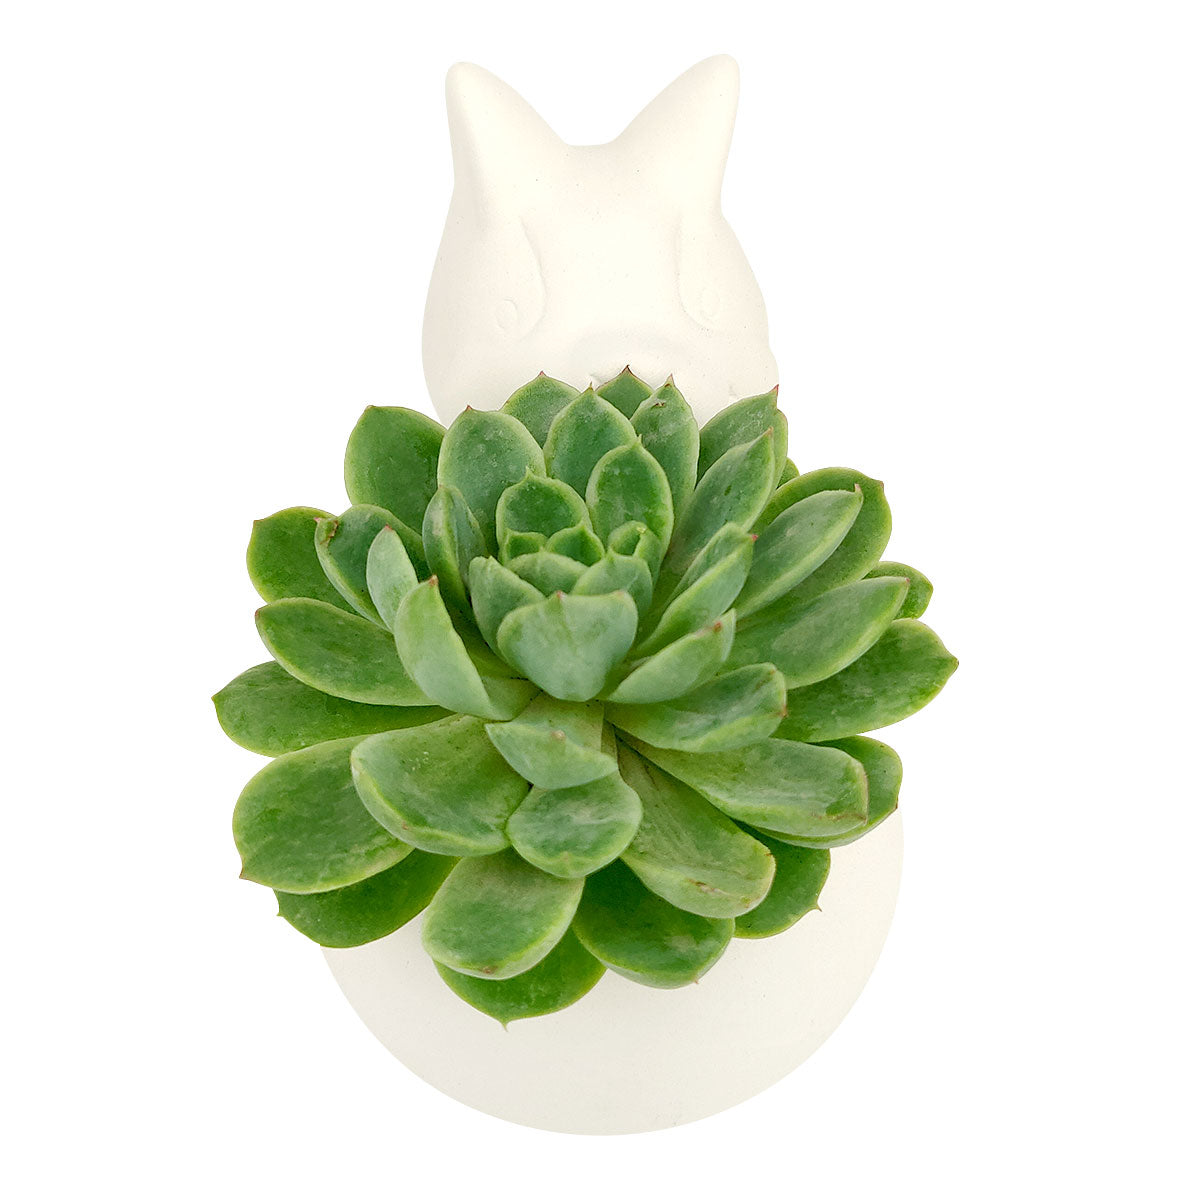 DIY Ceramic Kitty Pot for sale, White Ceramic Cat Planter Pot, Unique Succulent Gift, craft supplies, cat shaped planter pot, succulent pot plant pot DIY pot